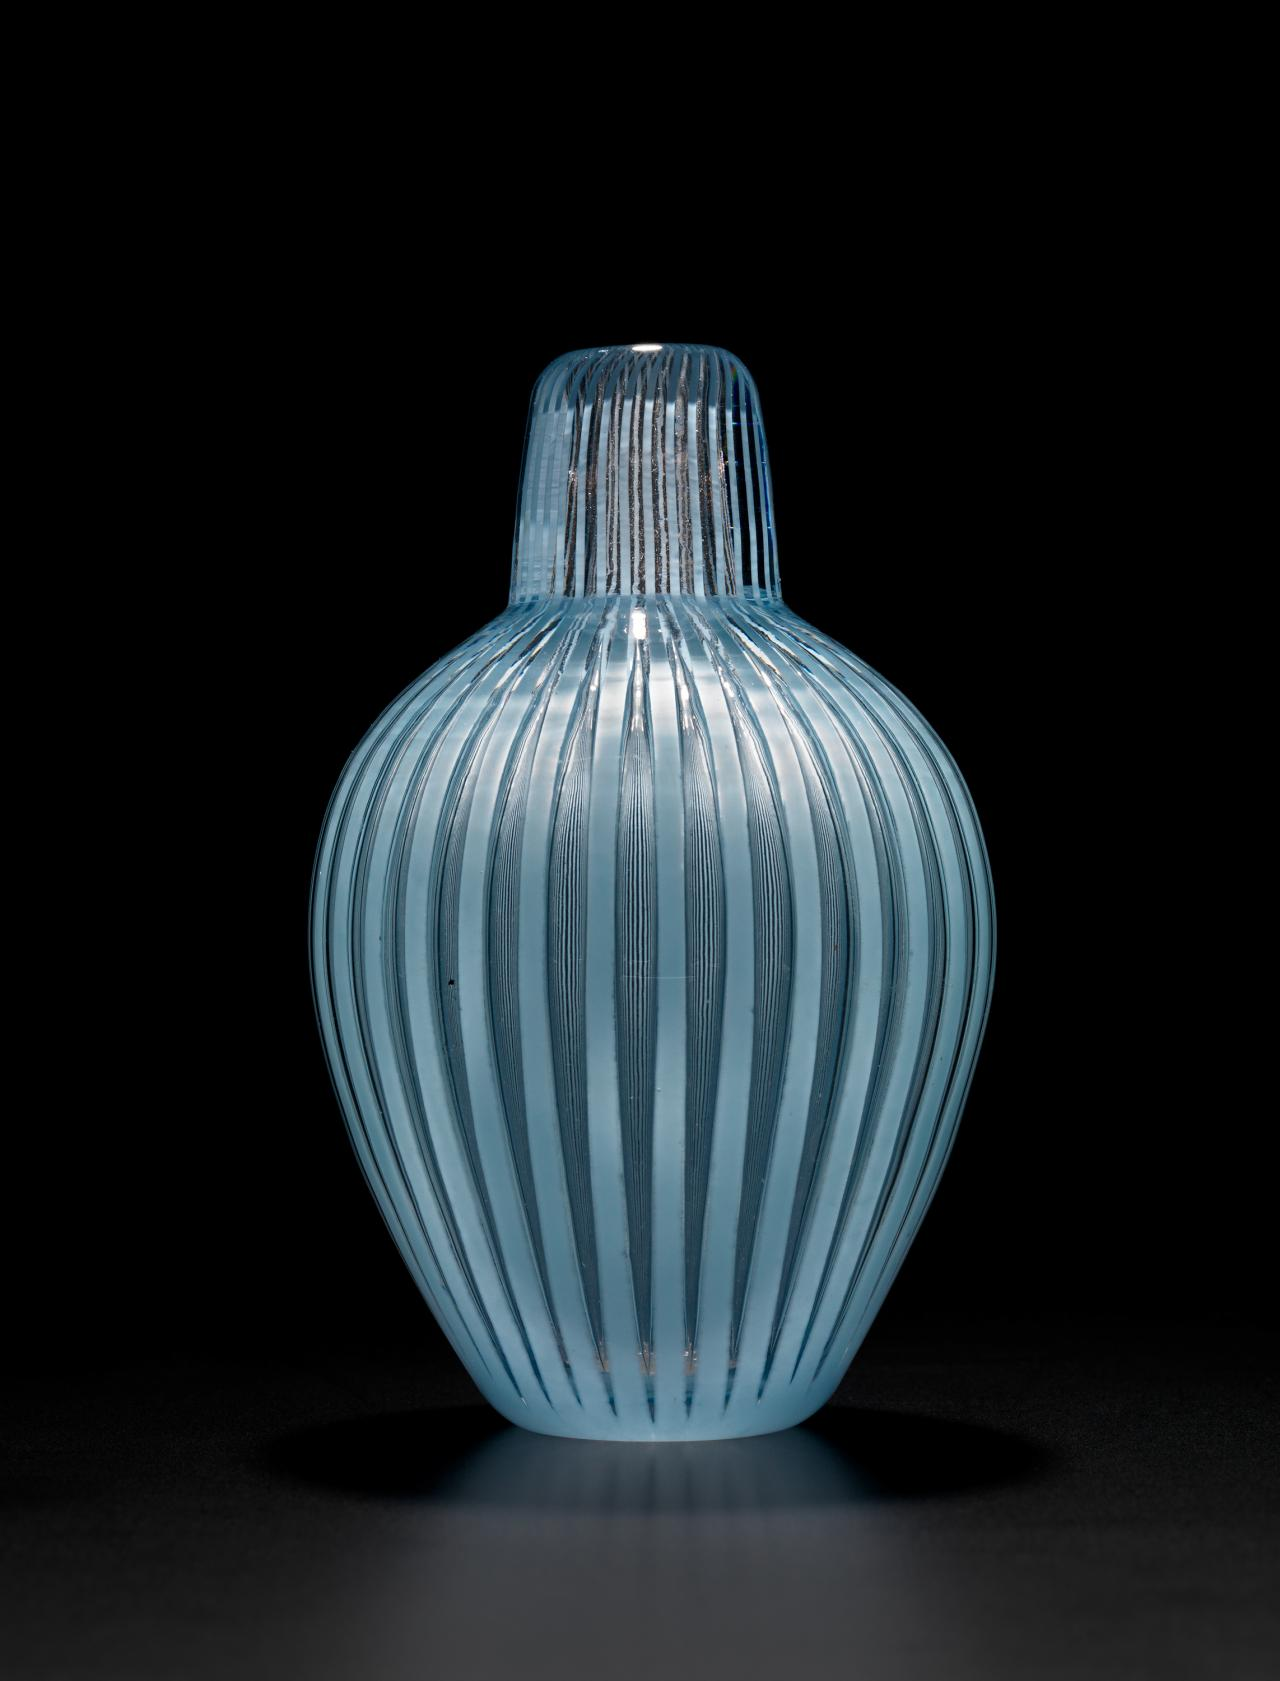 Vase, from the Ariel series